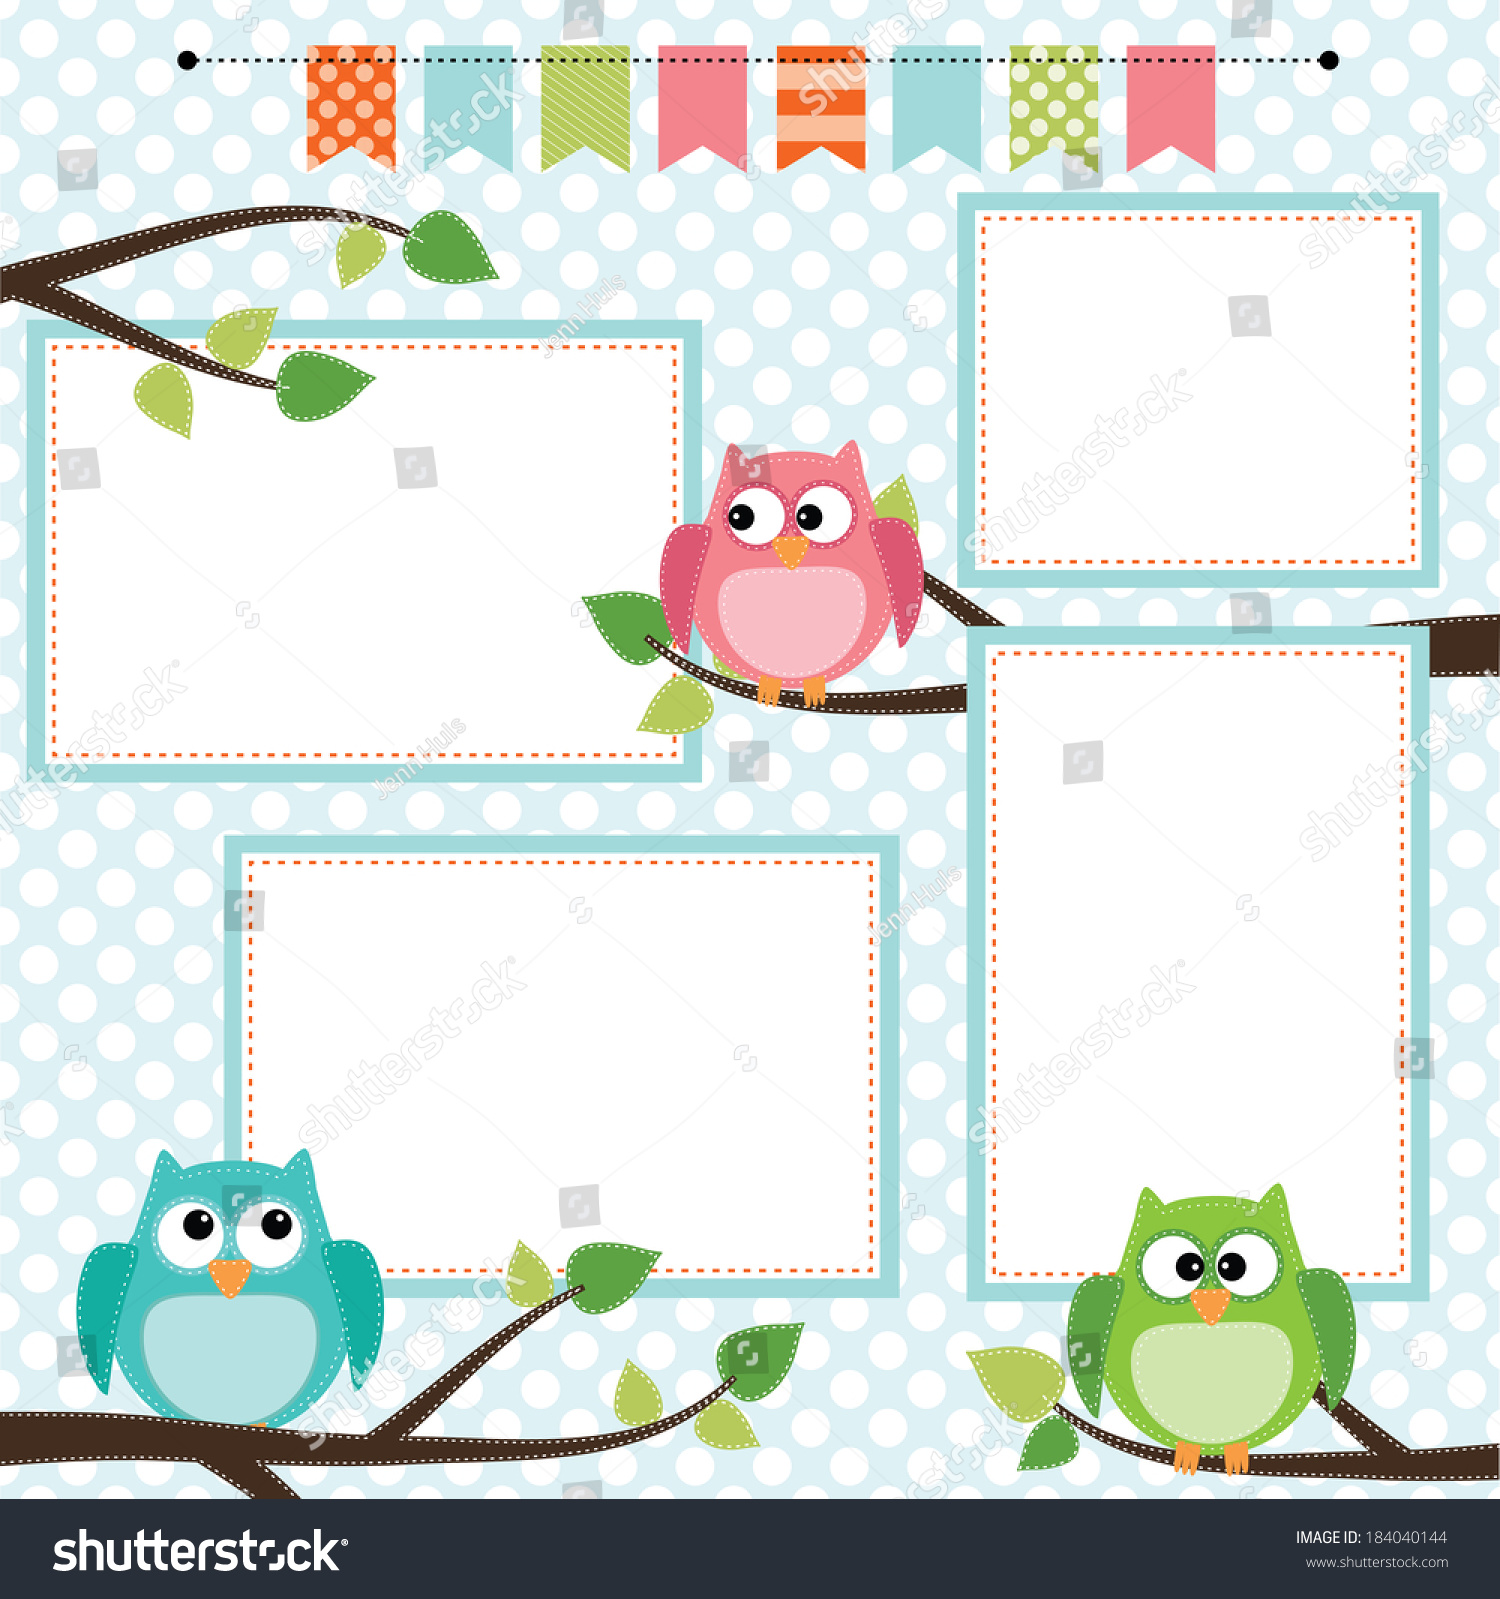 Fine 1.5 Inch Circle Template Tall 13 Birthday Invitation Templates Flat 16 Birthday Invitation Templates 2 Binder Spine Template Young 2 Inch Button Template Coloured2 Inch Circle Template Owl Scrapbooking Template Banner Bunting 4x6 Stock Illustration ..